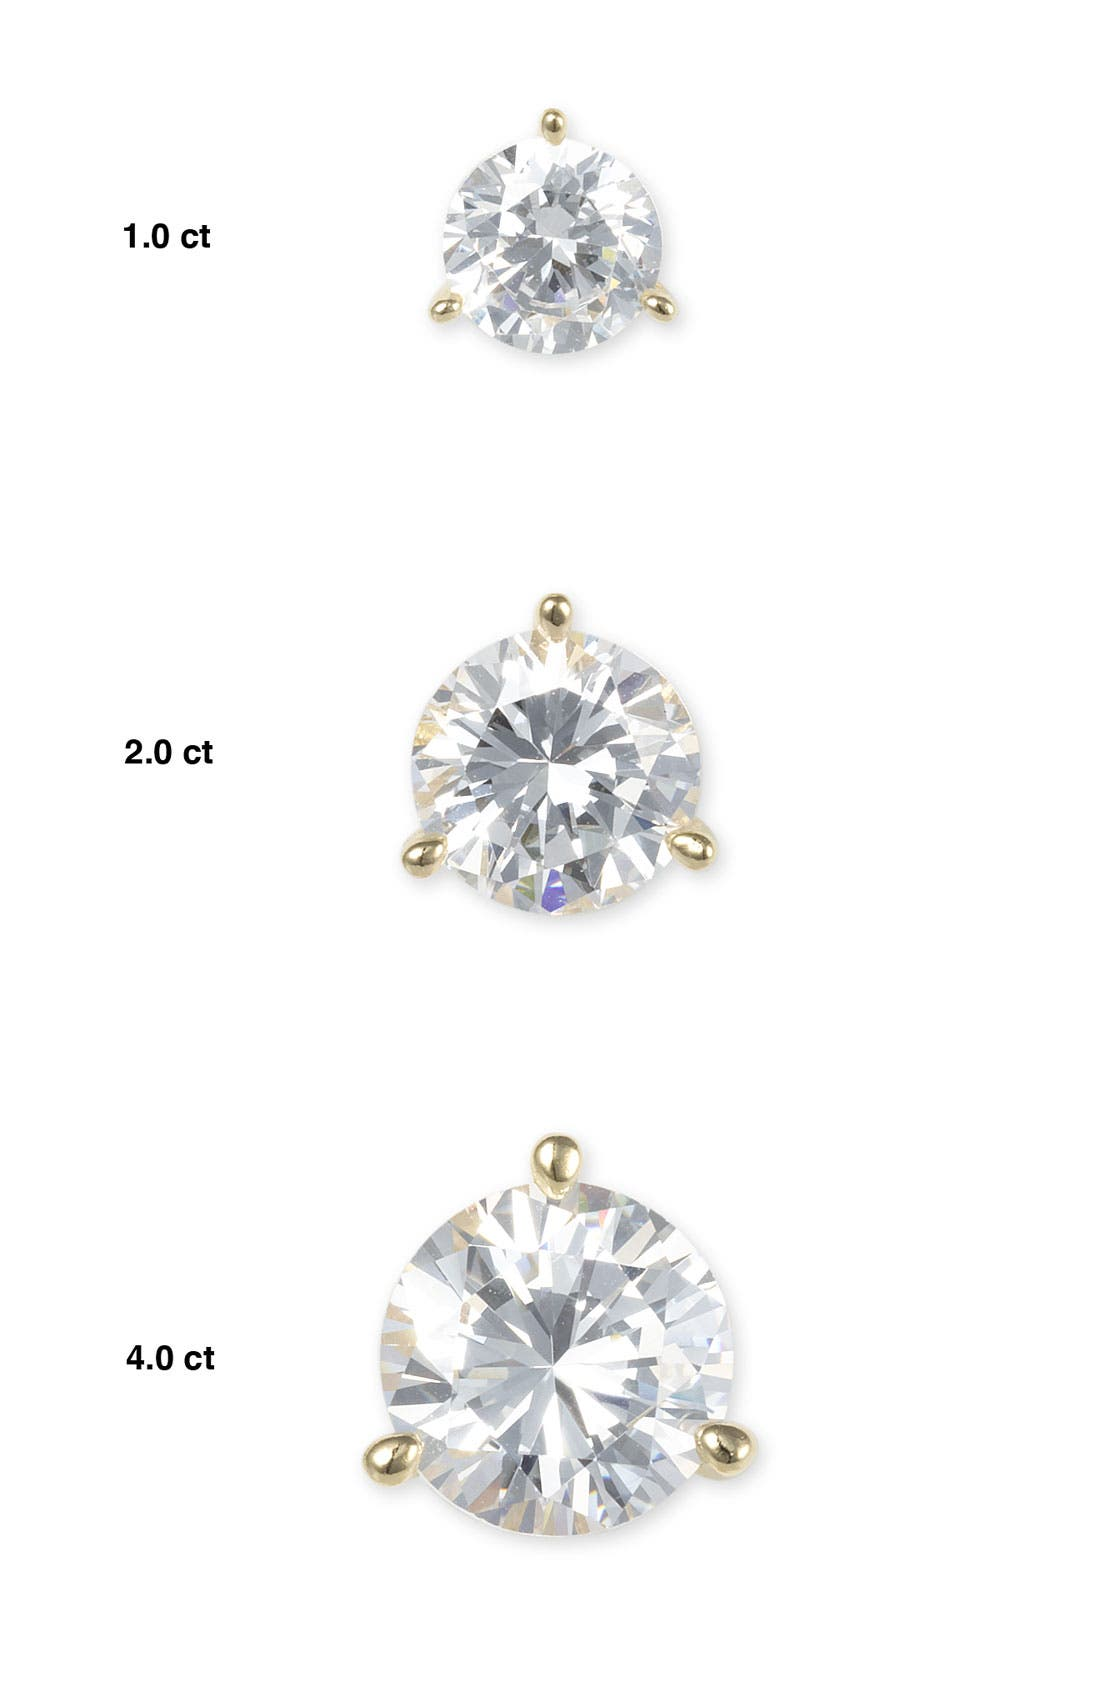 'Martini Set' Cubic Zirconia Stud Earrings,                             Alternate thumbnail 2, color,                             040